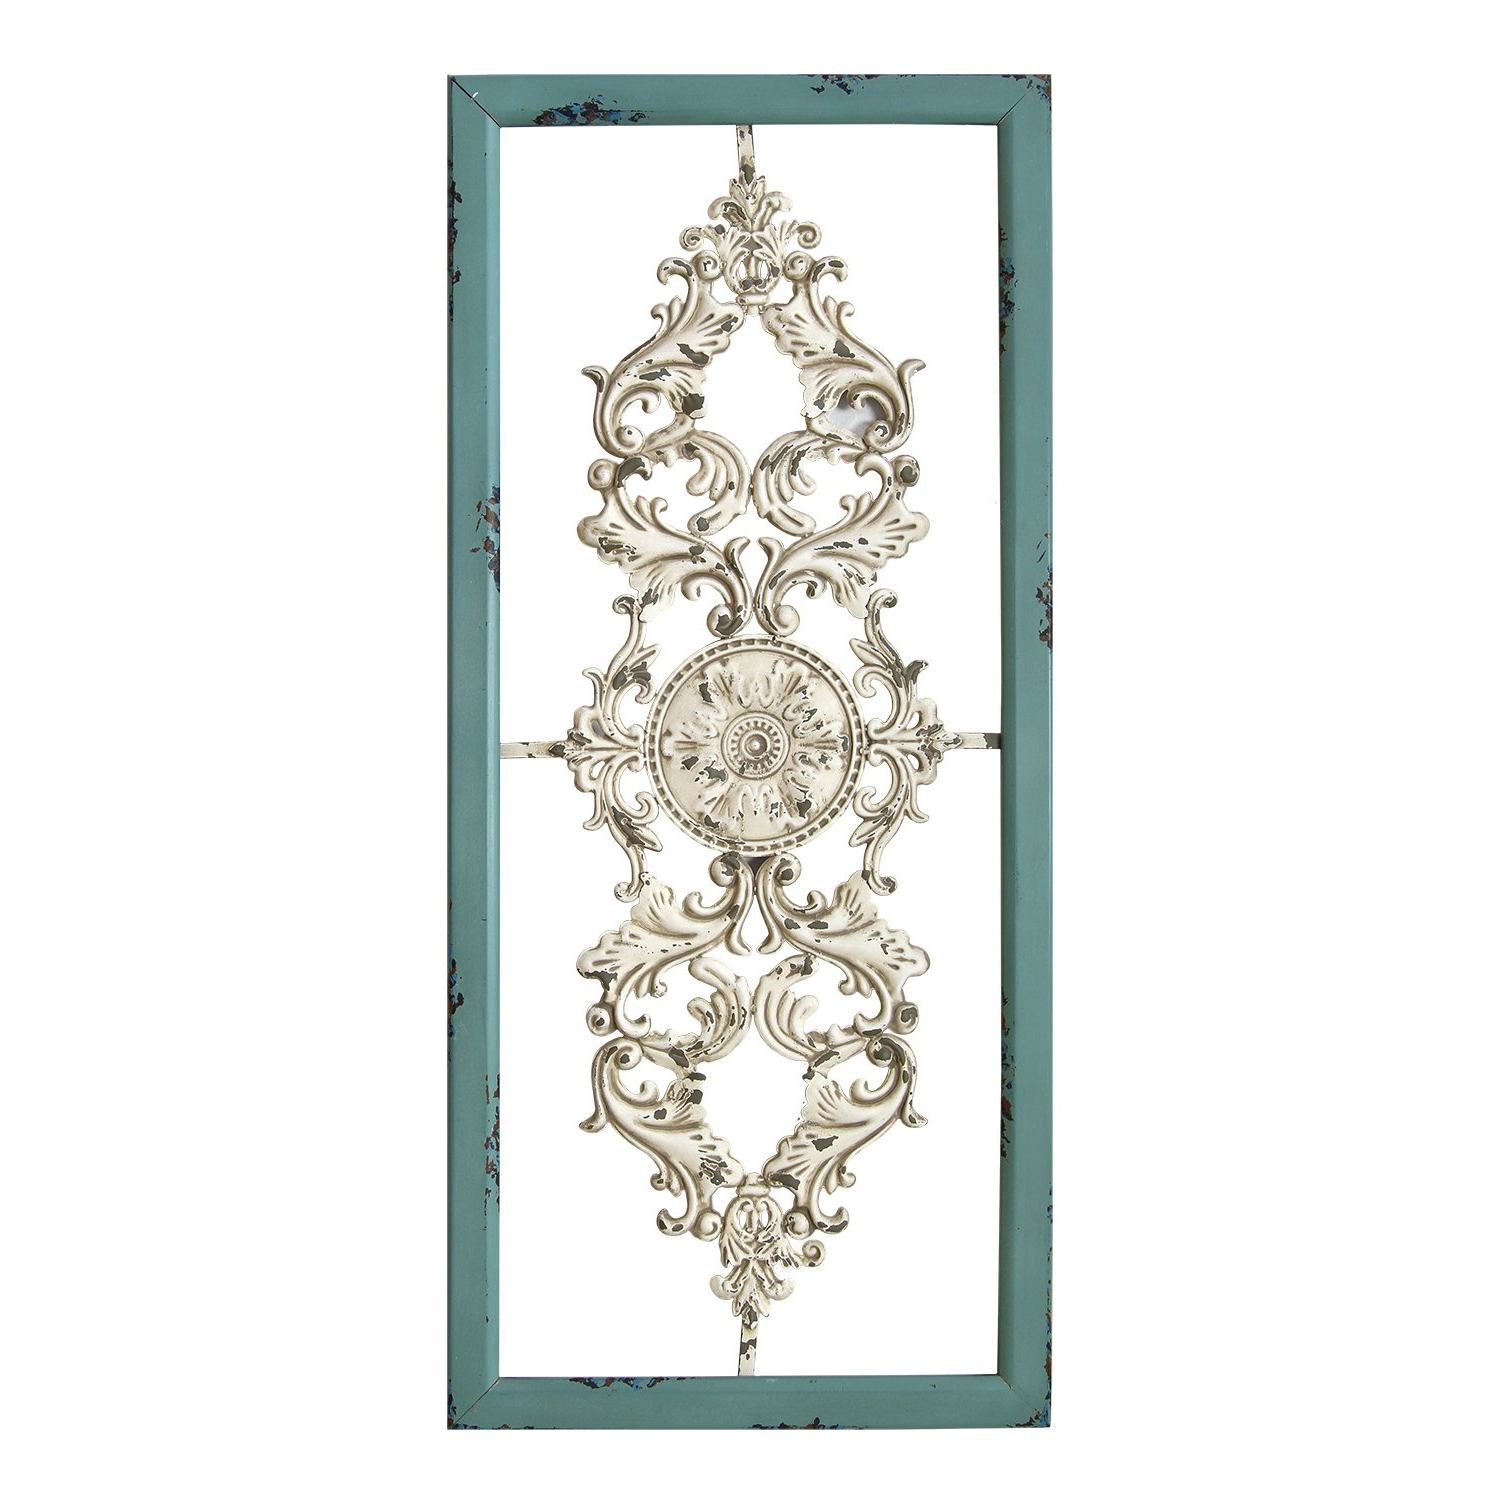 Widely Used Amazon: Stratton Home Decor Shd0121 Scroll Panel Wall Decor Within Scroll Panel Wall Decor (Gallery 1 of 20)